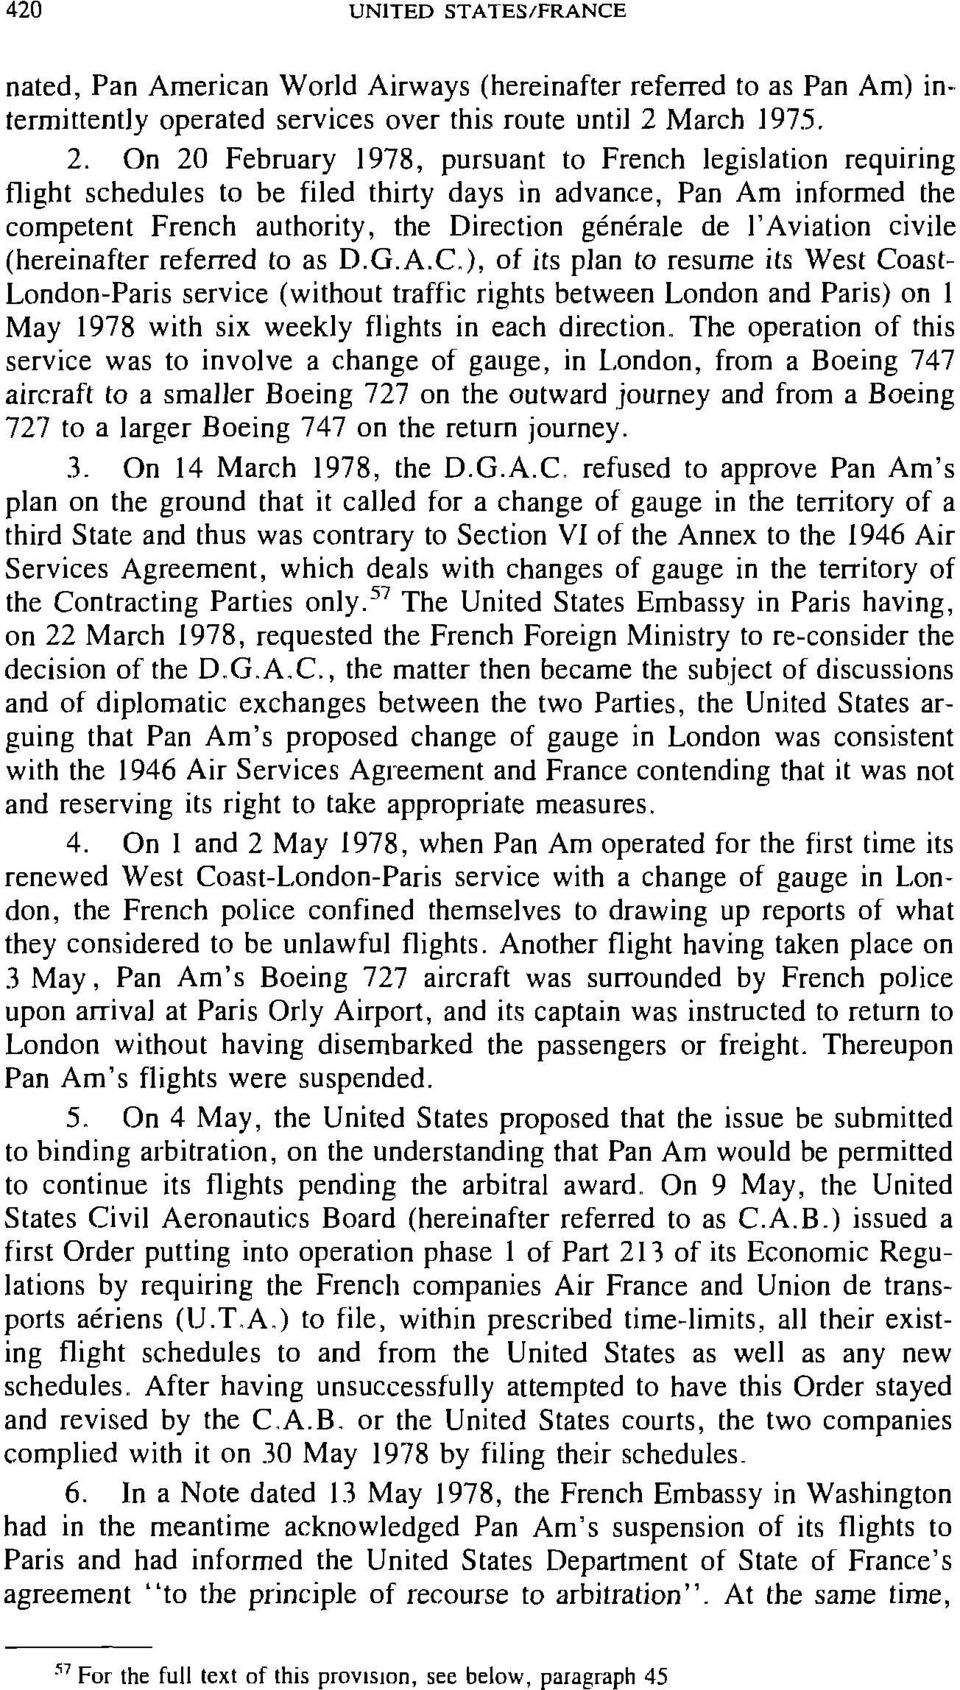 On 20 February 1978, pursuant to French legislation requiring flight schedules to be filed thirty days in advance, Pan Am informed the competent French authority, the Direction générale de l'aviation